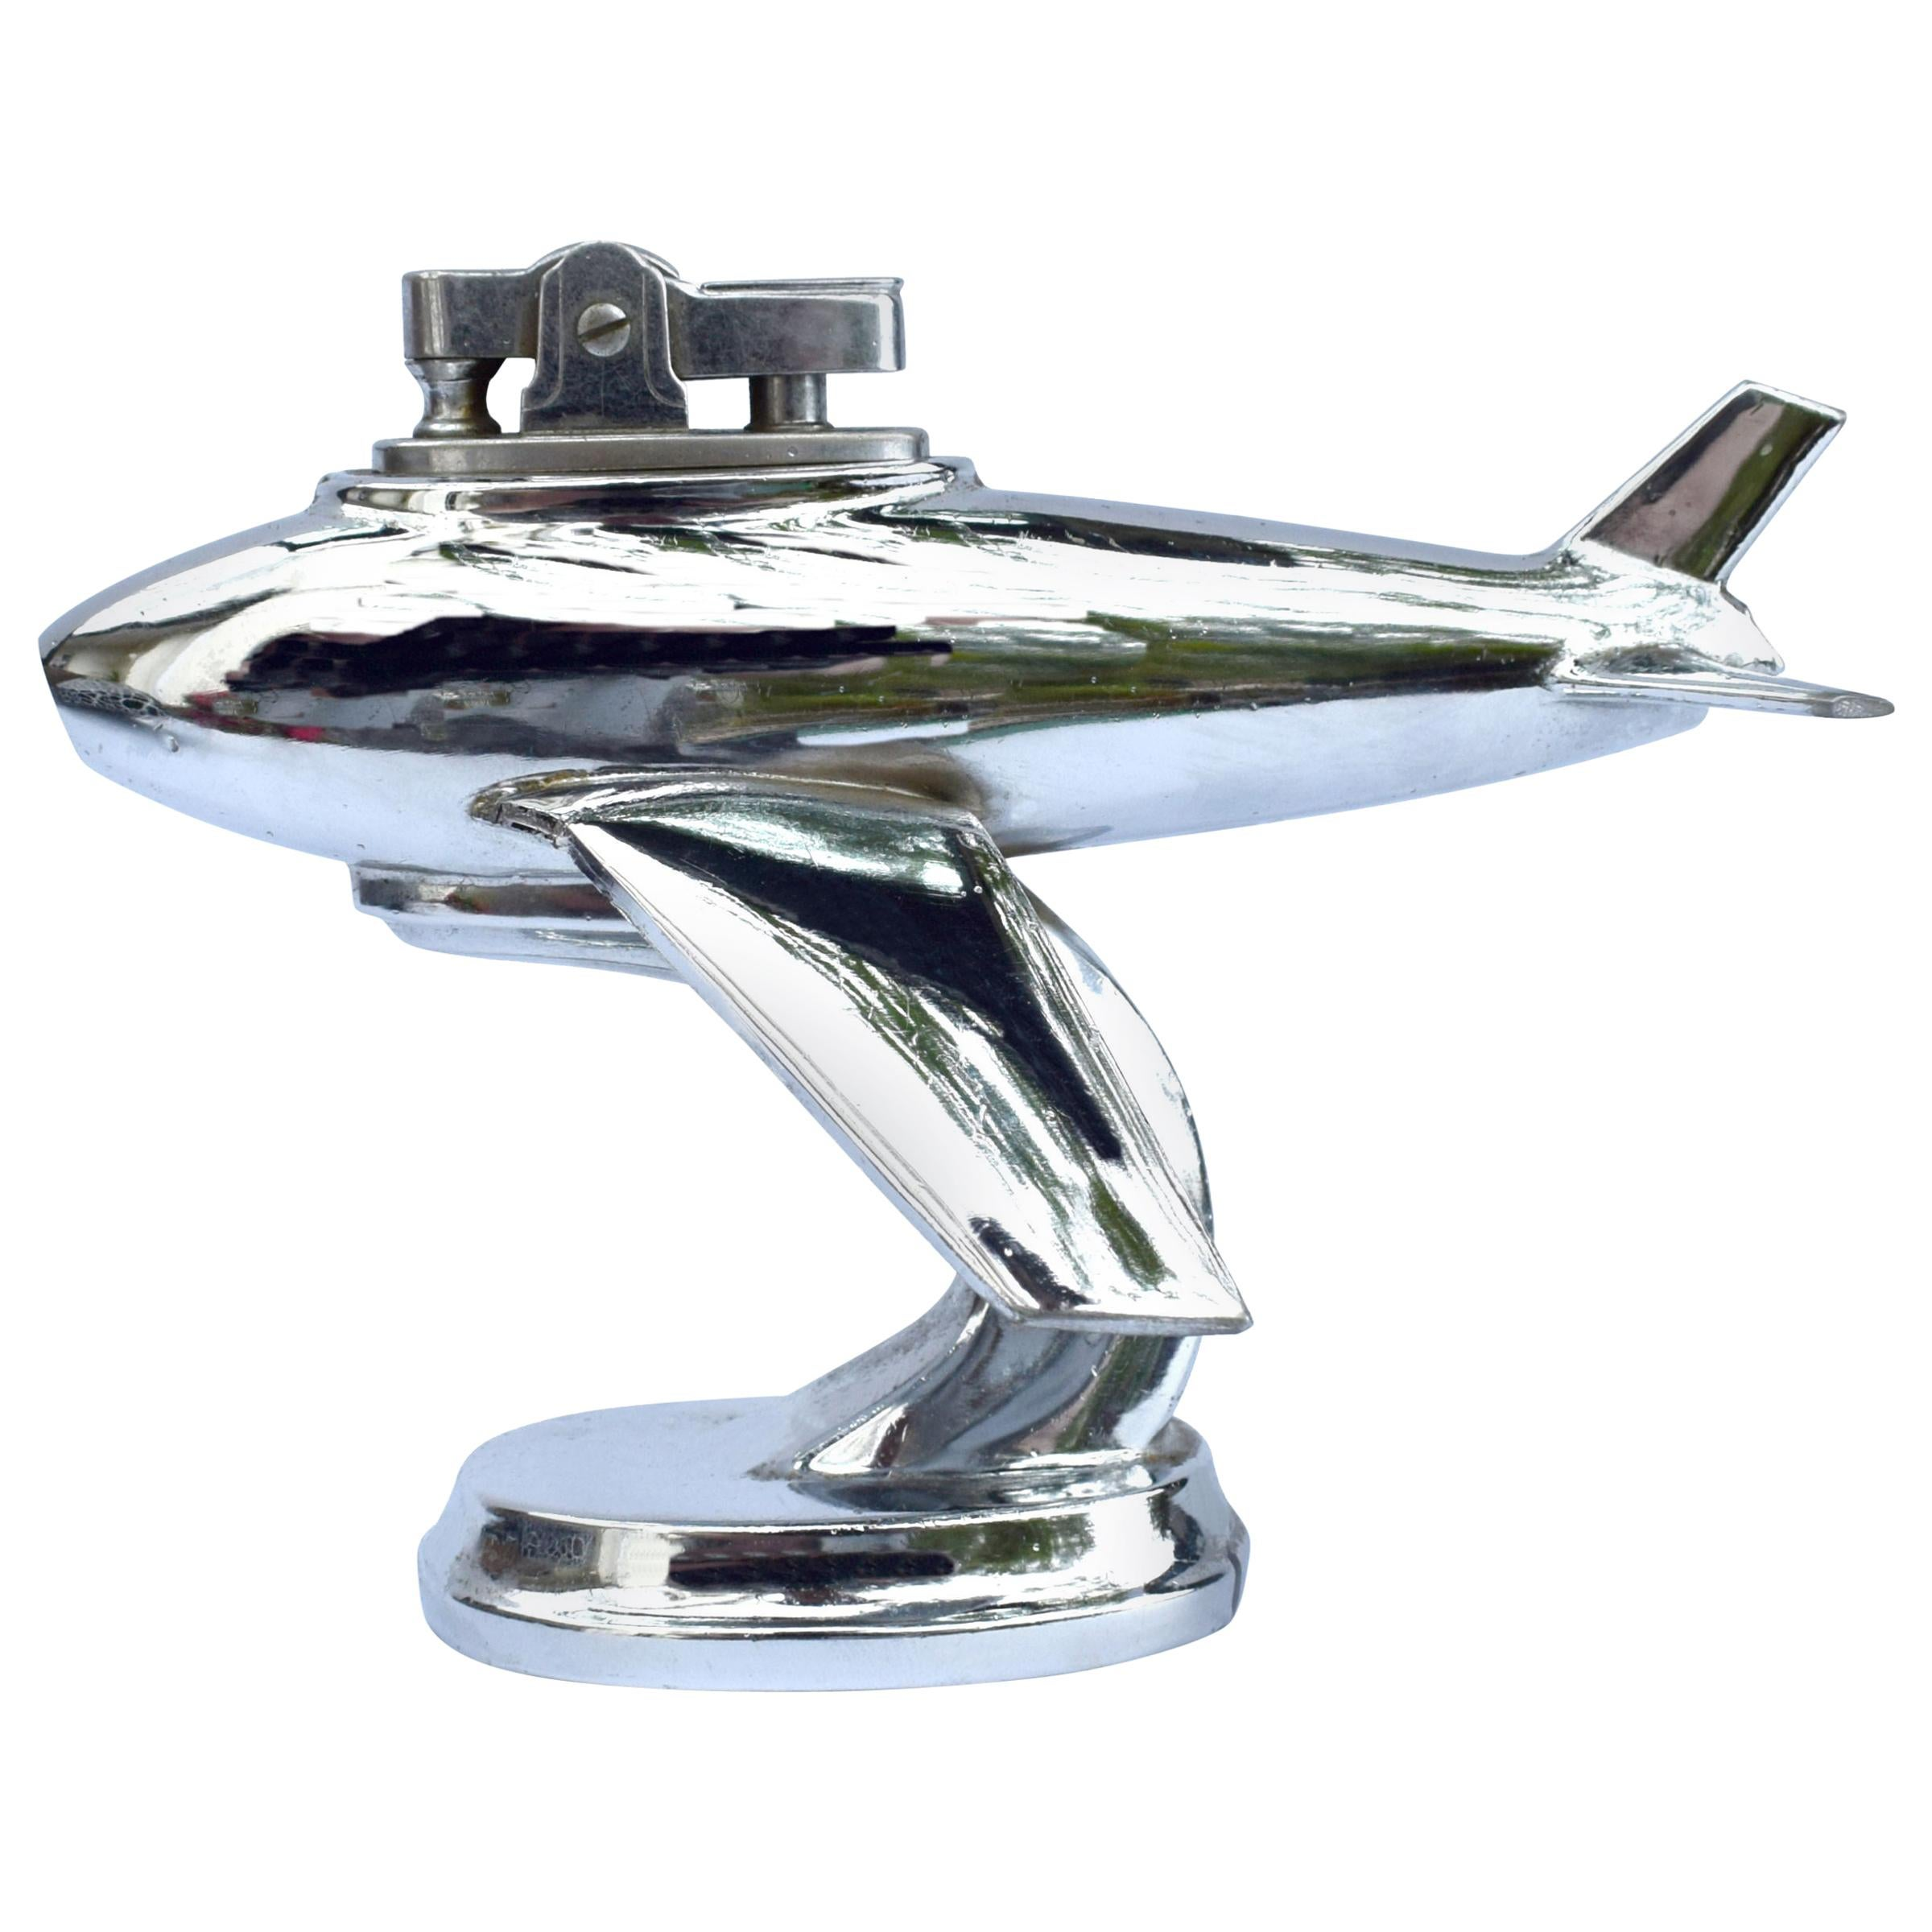 Art Deco Vintage Chrome Airplane Table Lighter